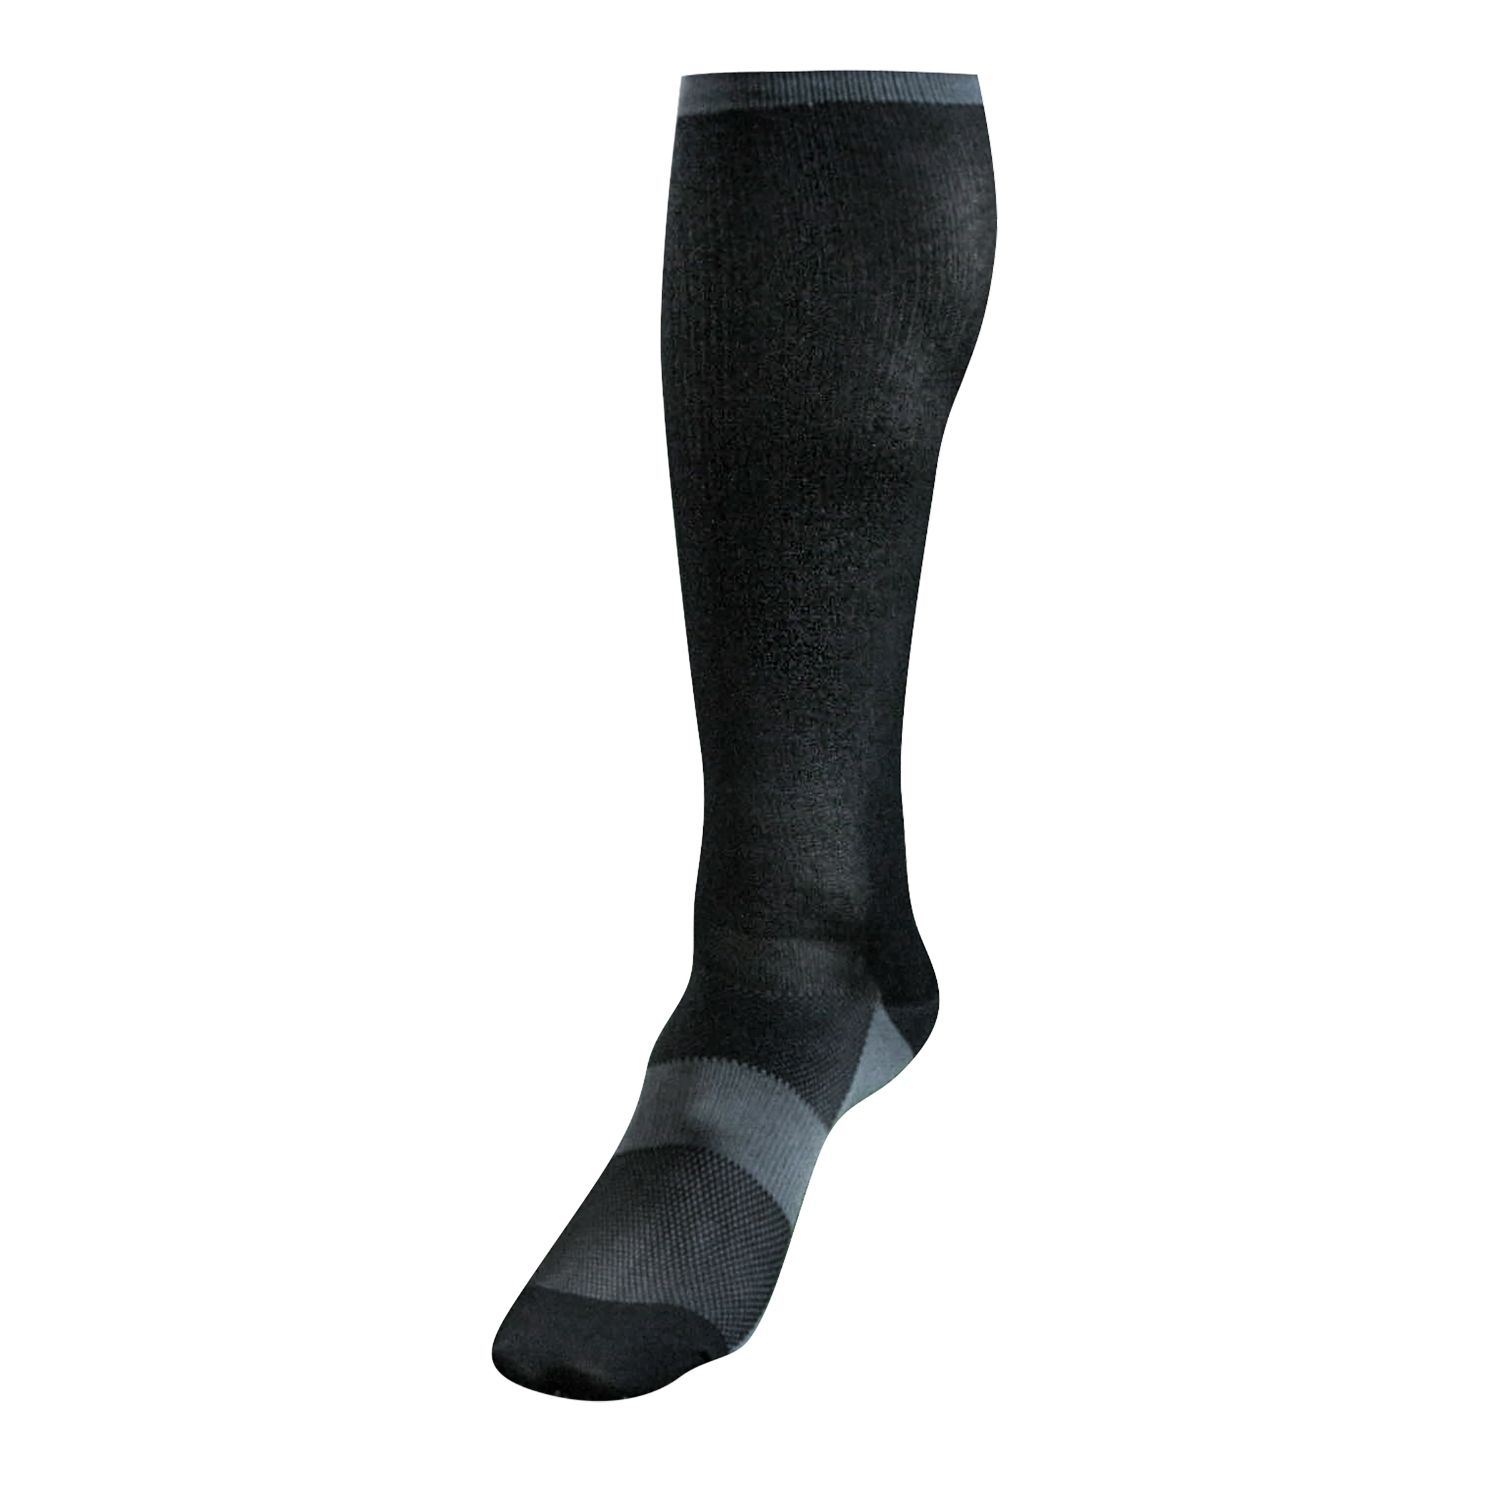 Champro Skate Baselayer Hockey Sock Black Small